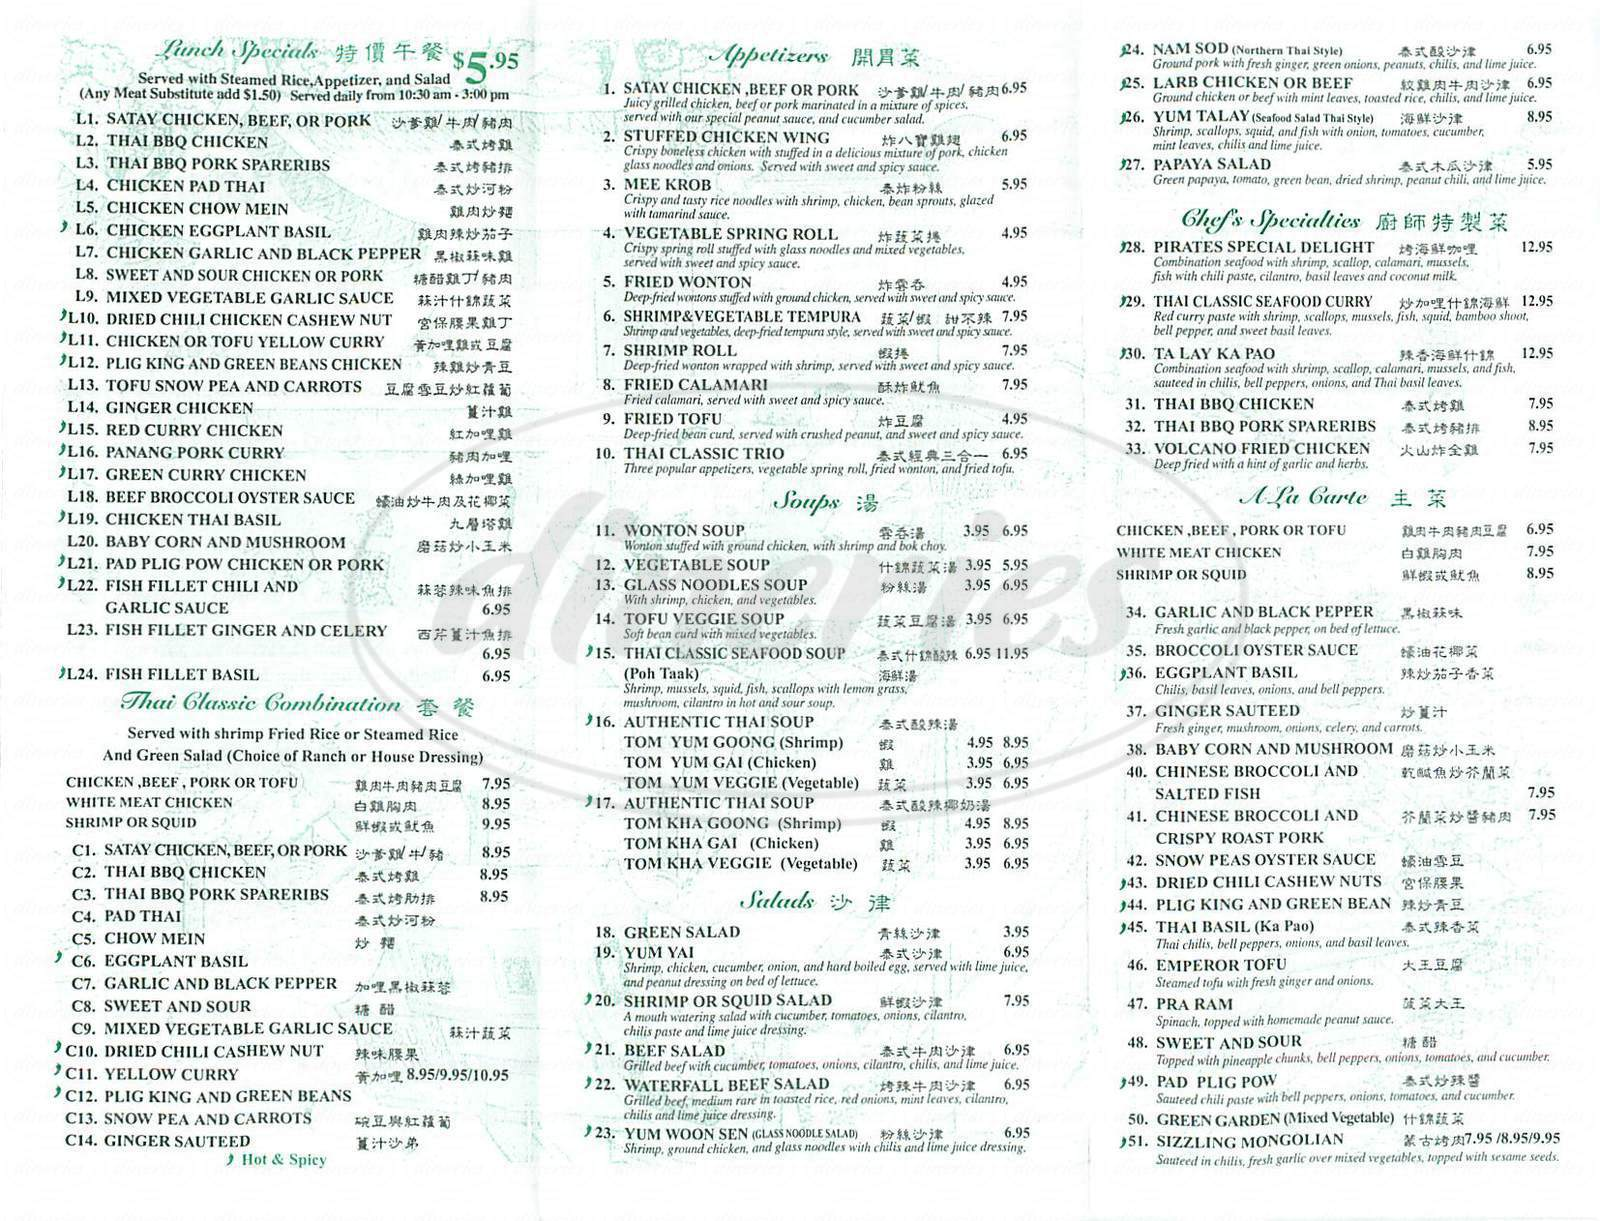 menu for Thai Classic Restaurant